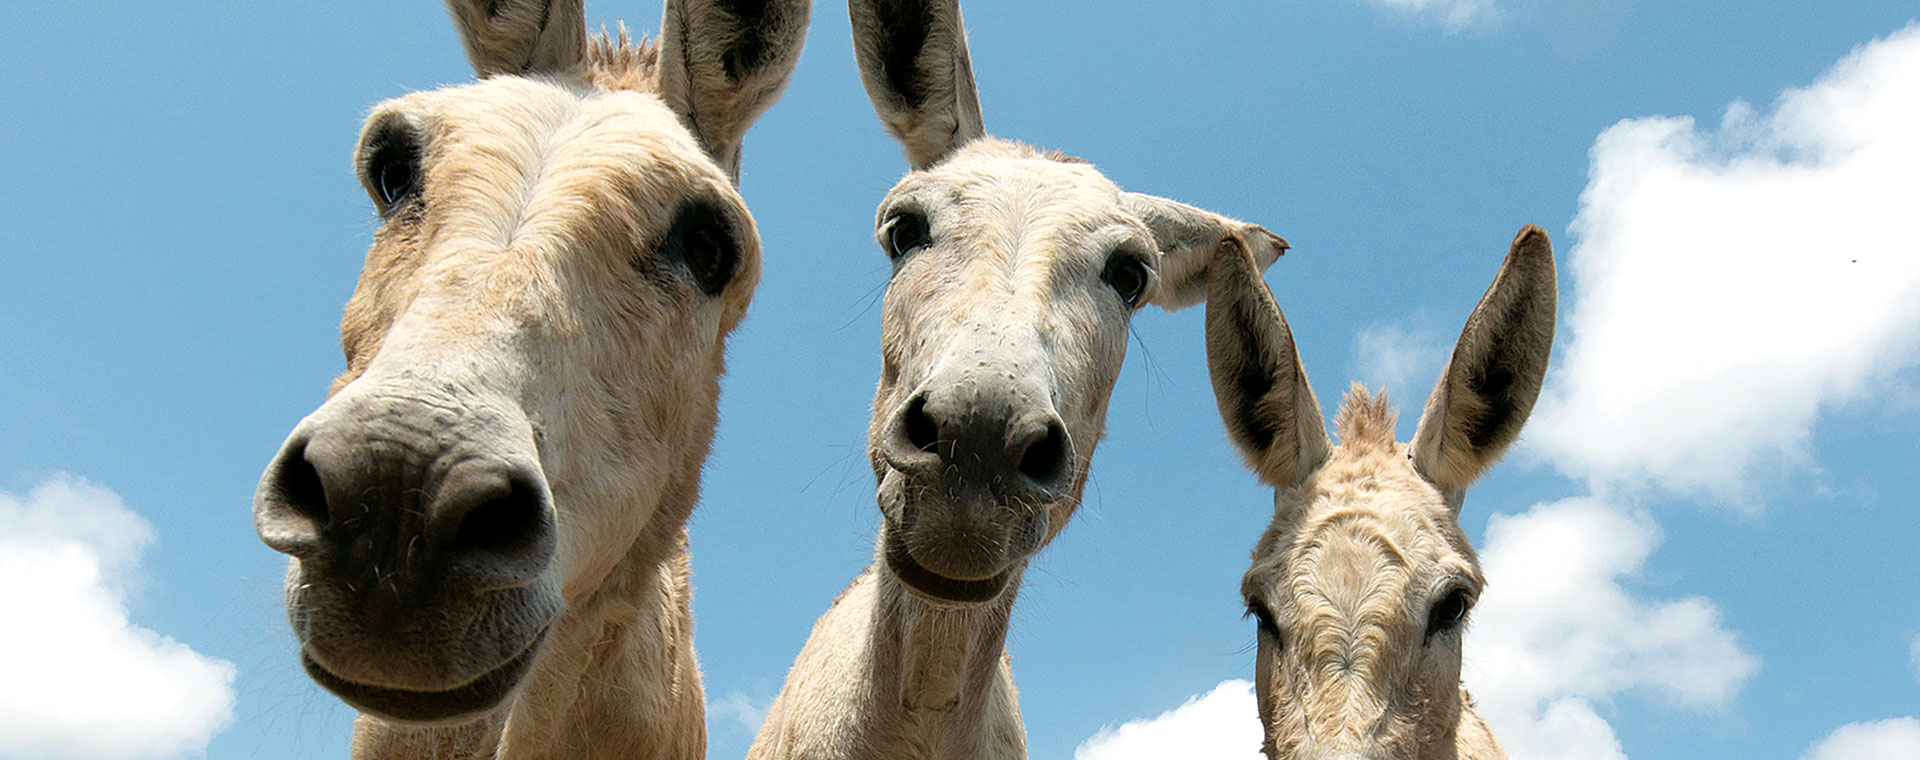 Heathshot of three donkeys